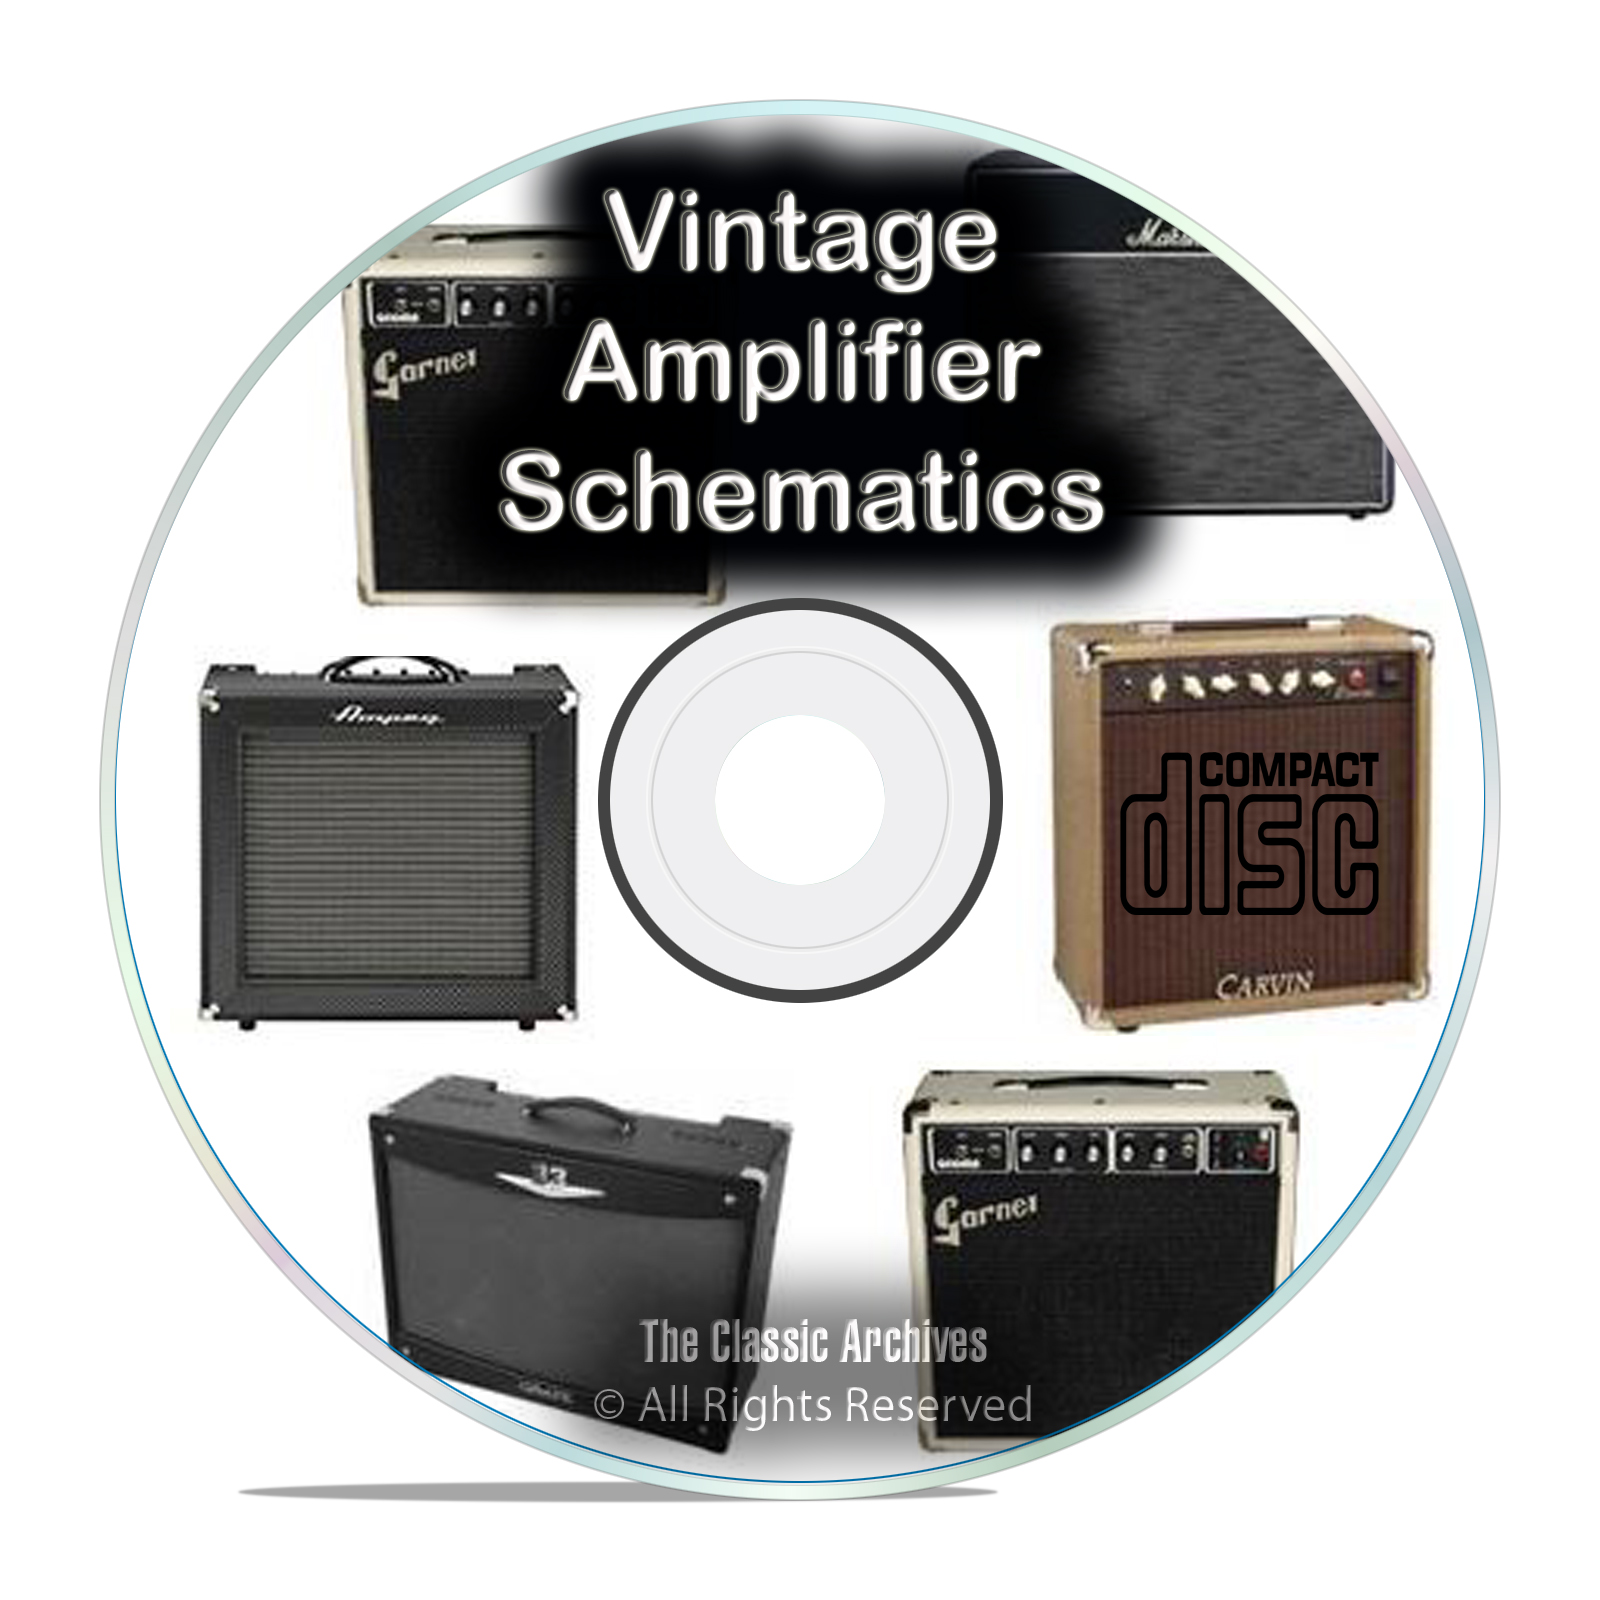 792 Vintage Amplifier Schematics, Fender, Fisher Marshall Peavey Vox CD PDF